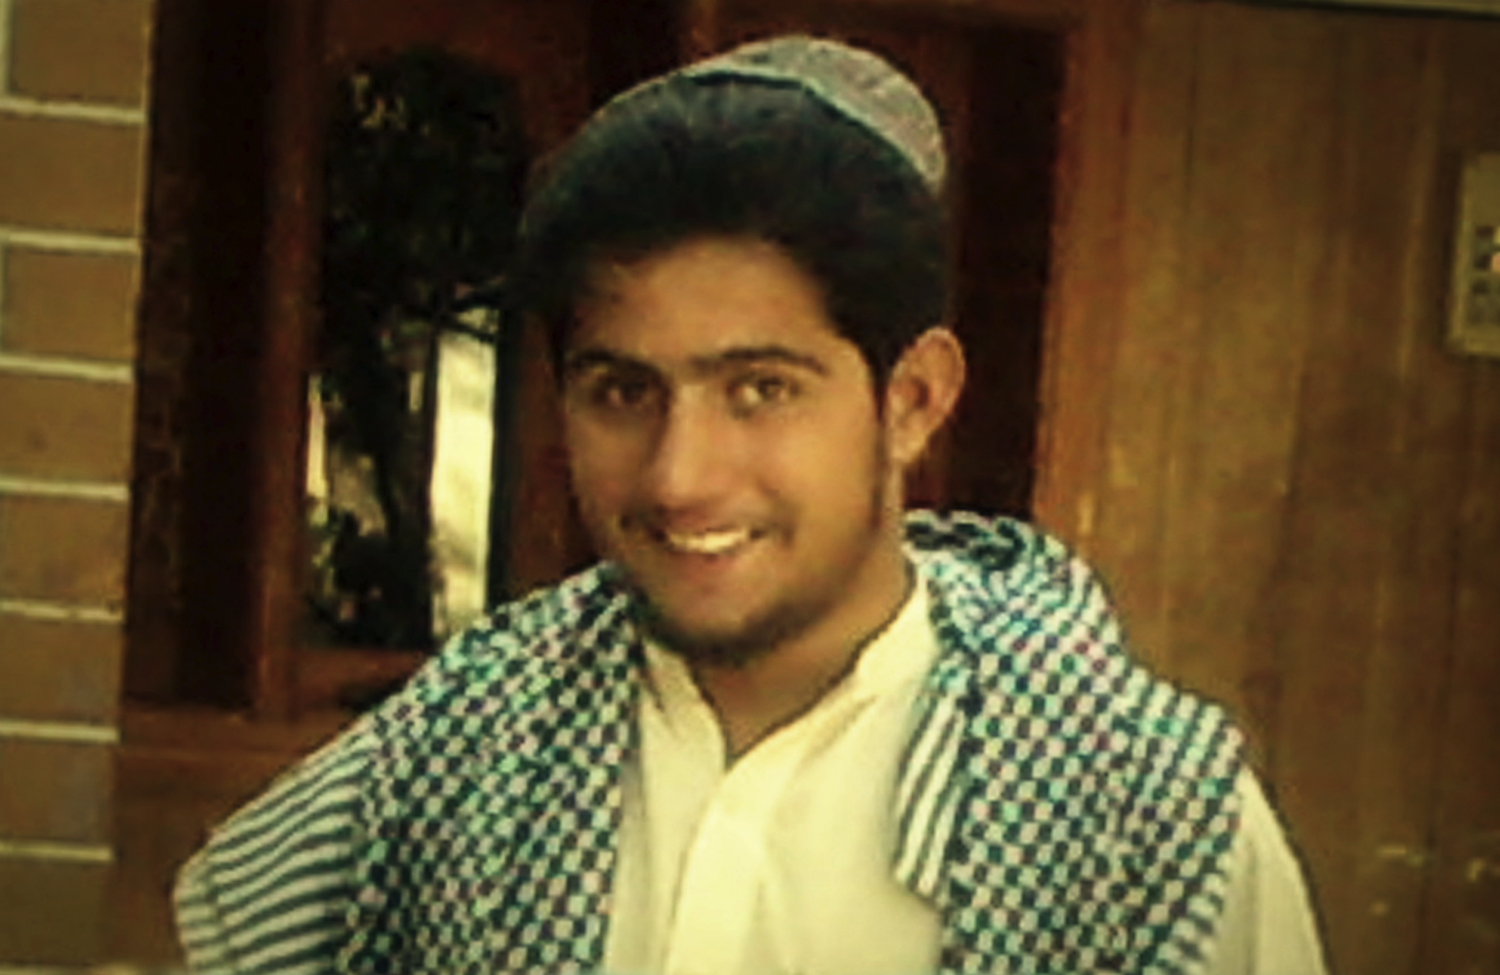 pemTariq-Aziz-a-16-year-old-Pakistani-killed-by-a-US-drone-in-2011.-Film-still-courtesy-of-War-Costs-Films.emp